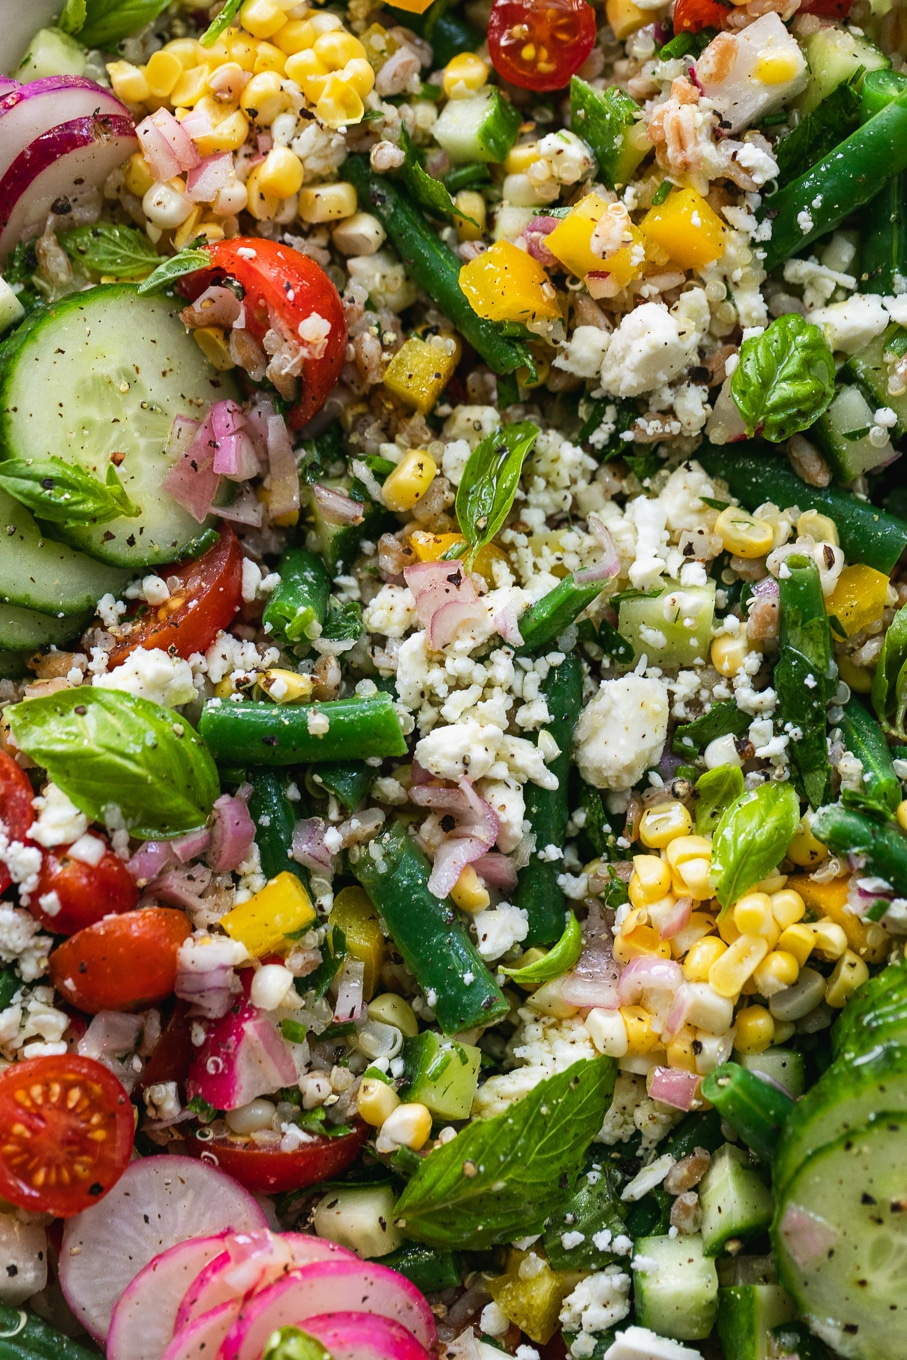 Very close up shot of a colorful grain salad